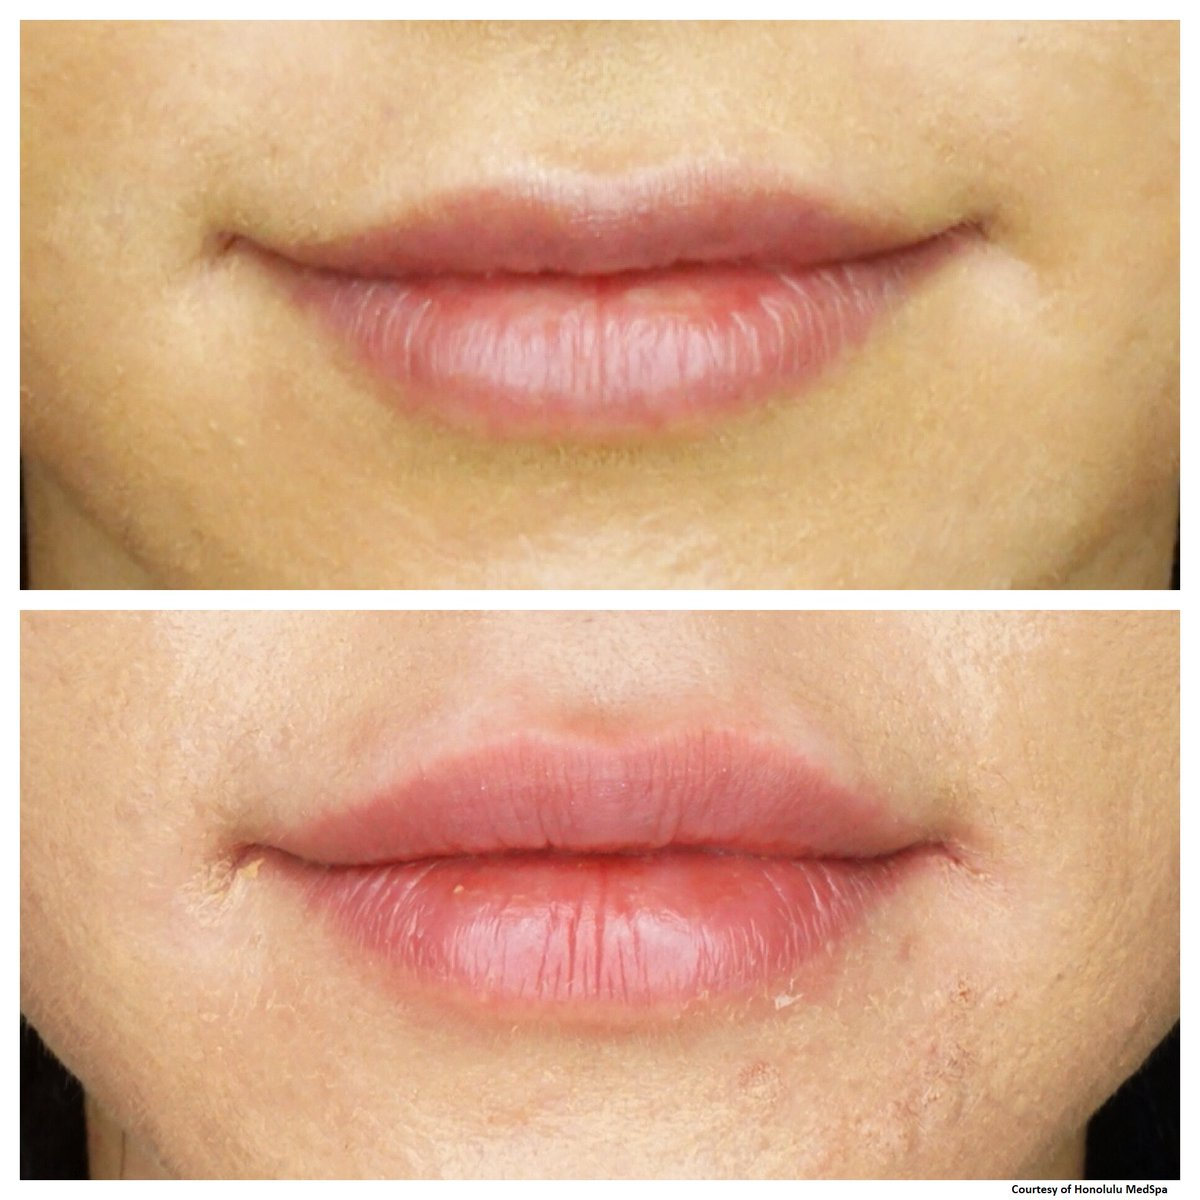 Fotona 4D Lip Augmentation in Abu Dhabi